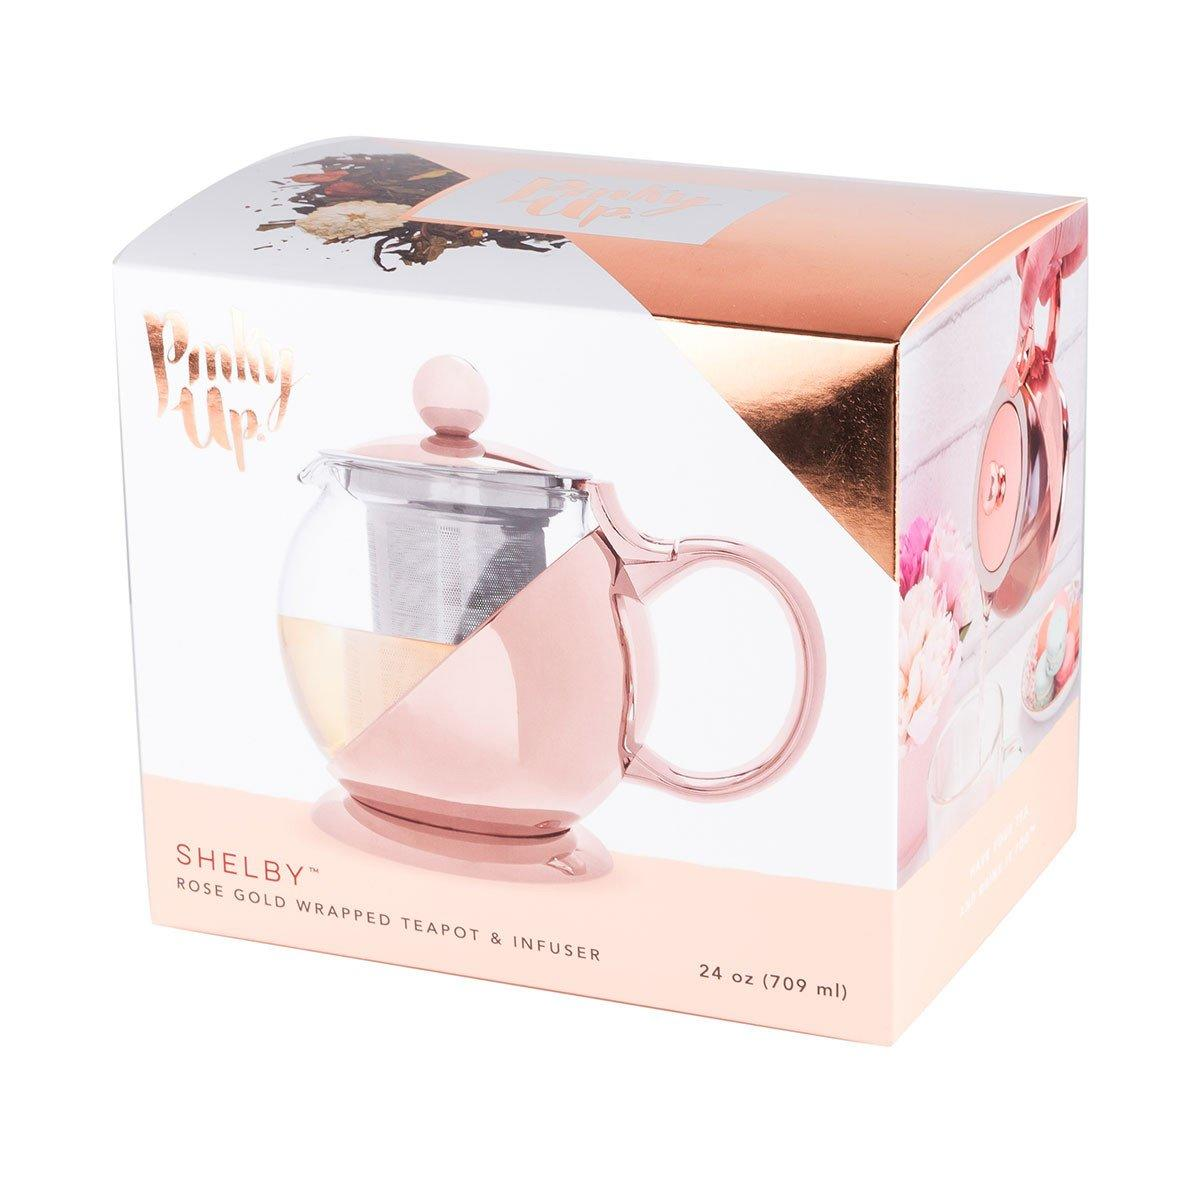 Shelby Rose Gold Wrapped Teapot & Infuser | ONLY £34.99